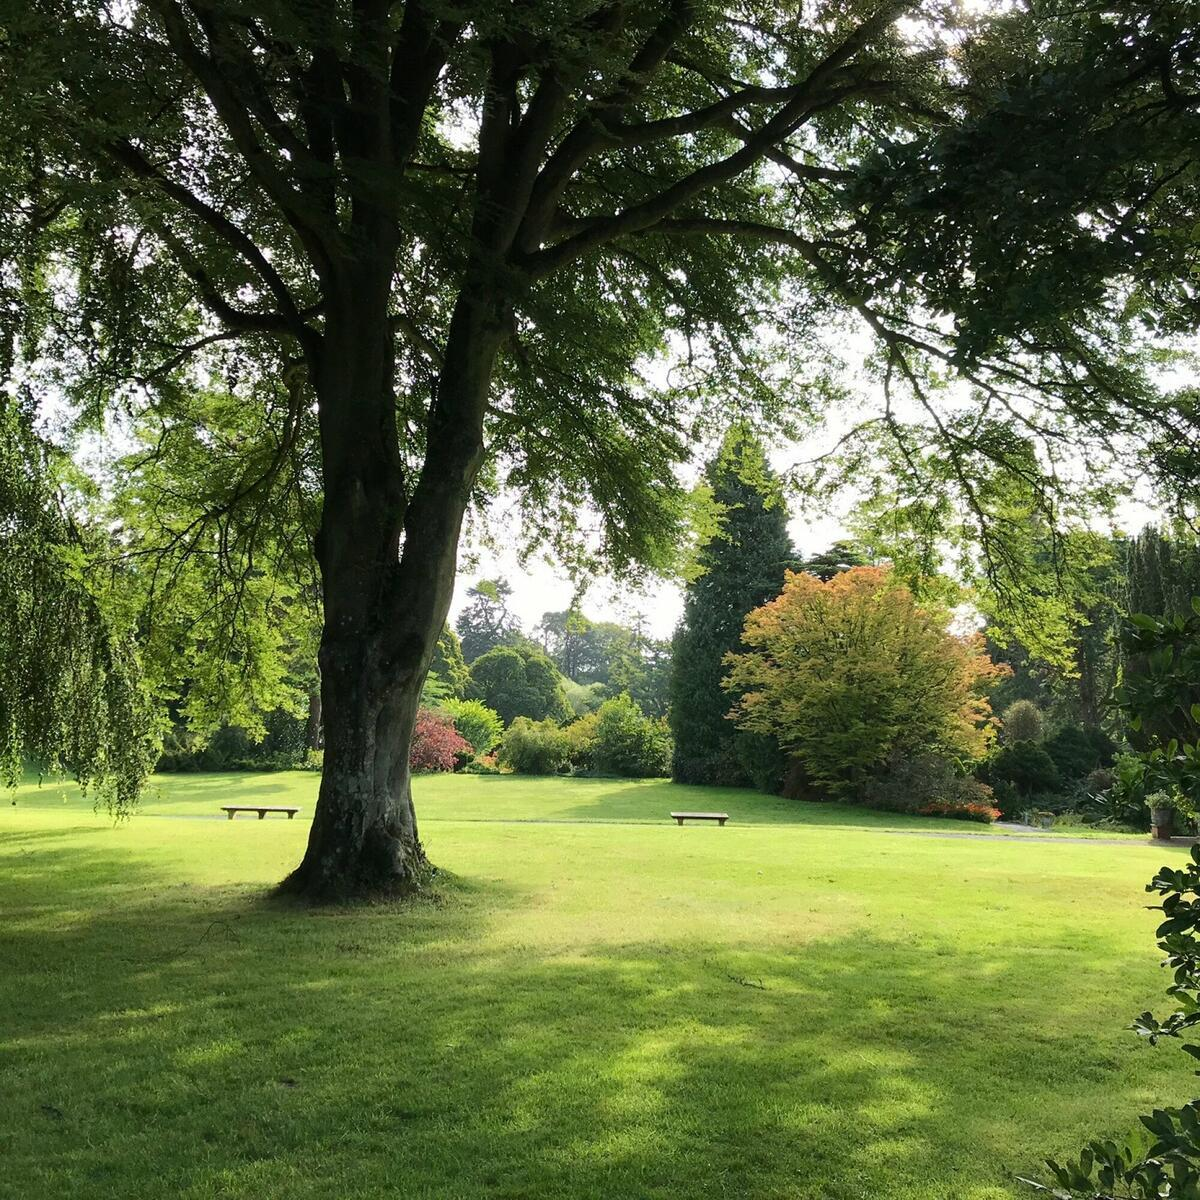 The main lawn, surrounded by specimen trees